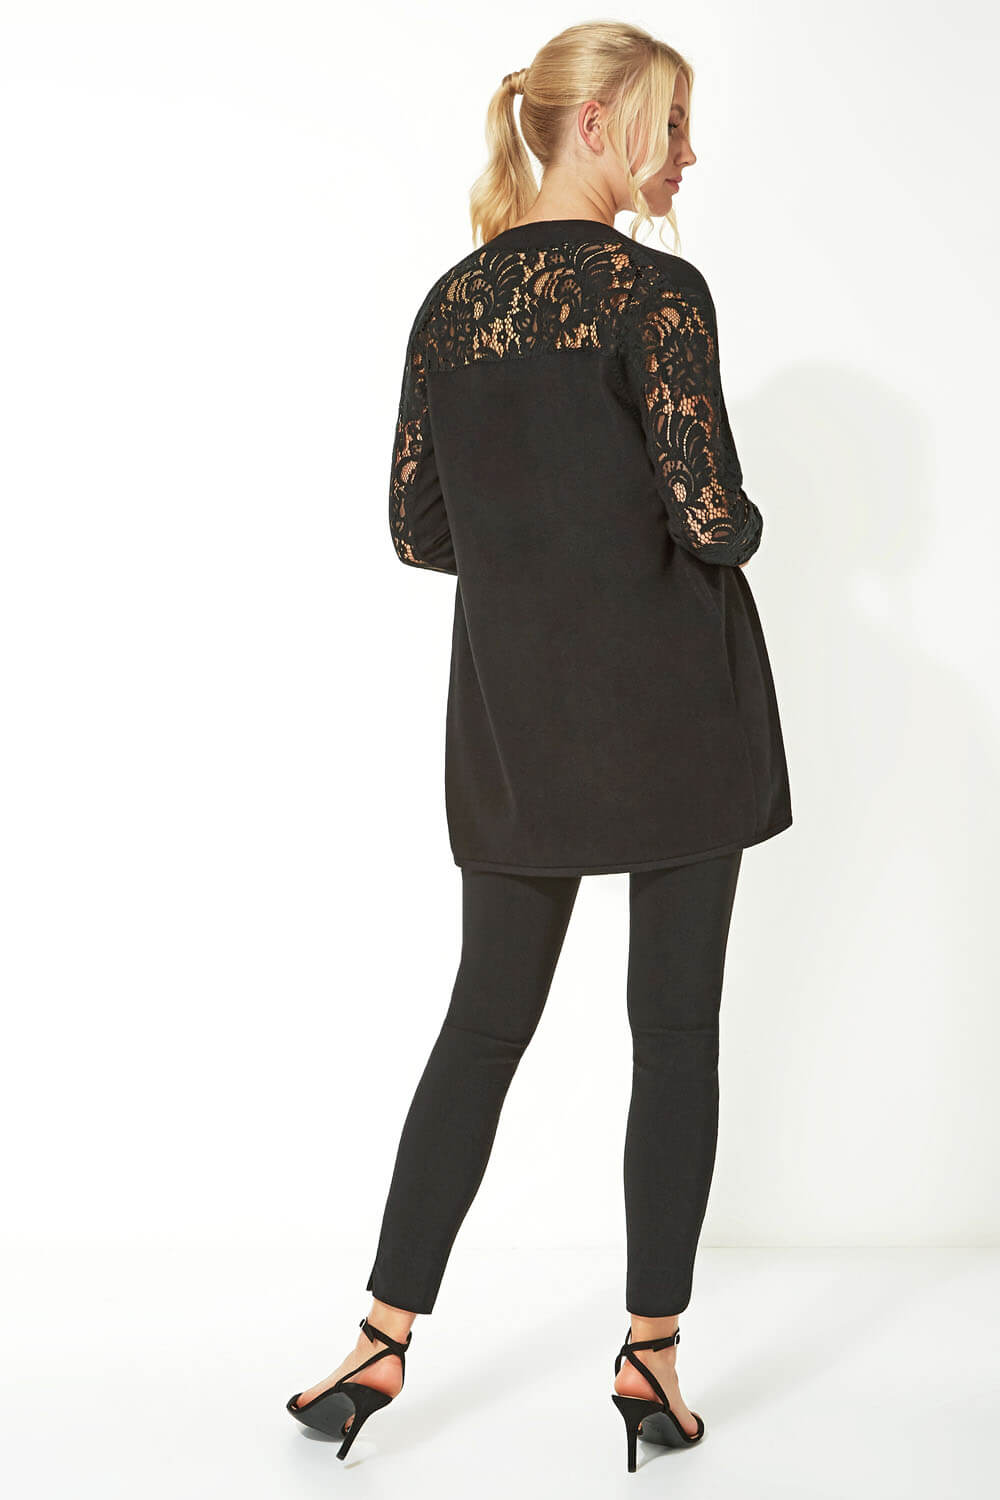 Longline-Long-Sleeve-Lace-Back-Cardigan-Women-Roman-Originals thumbnail 13